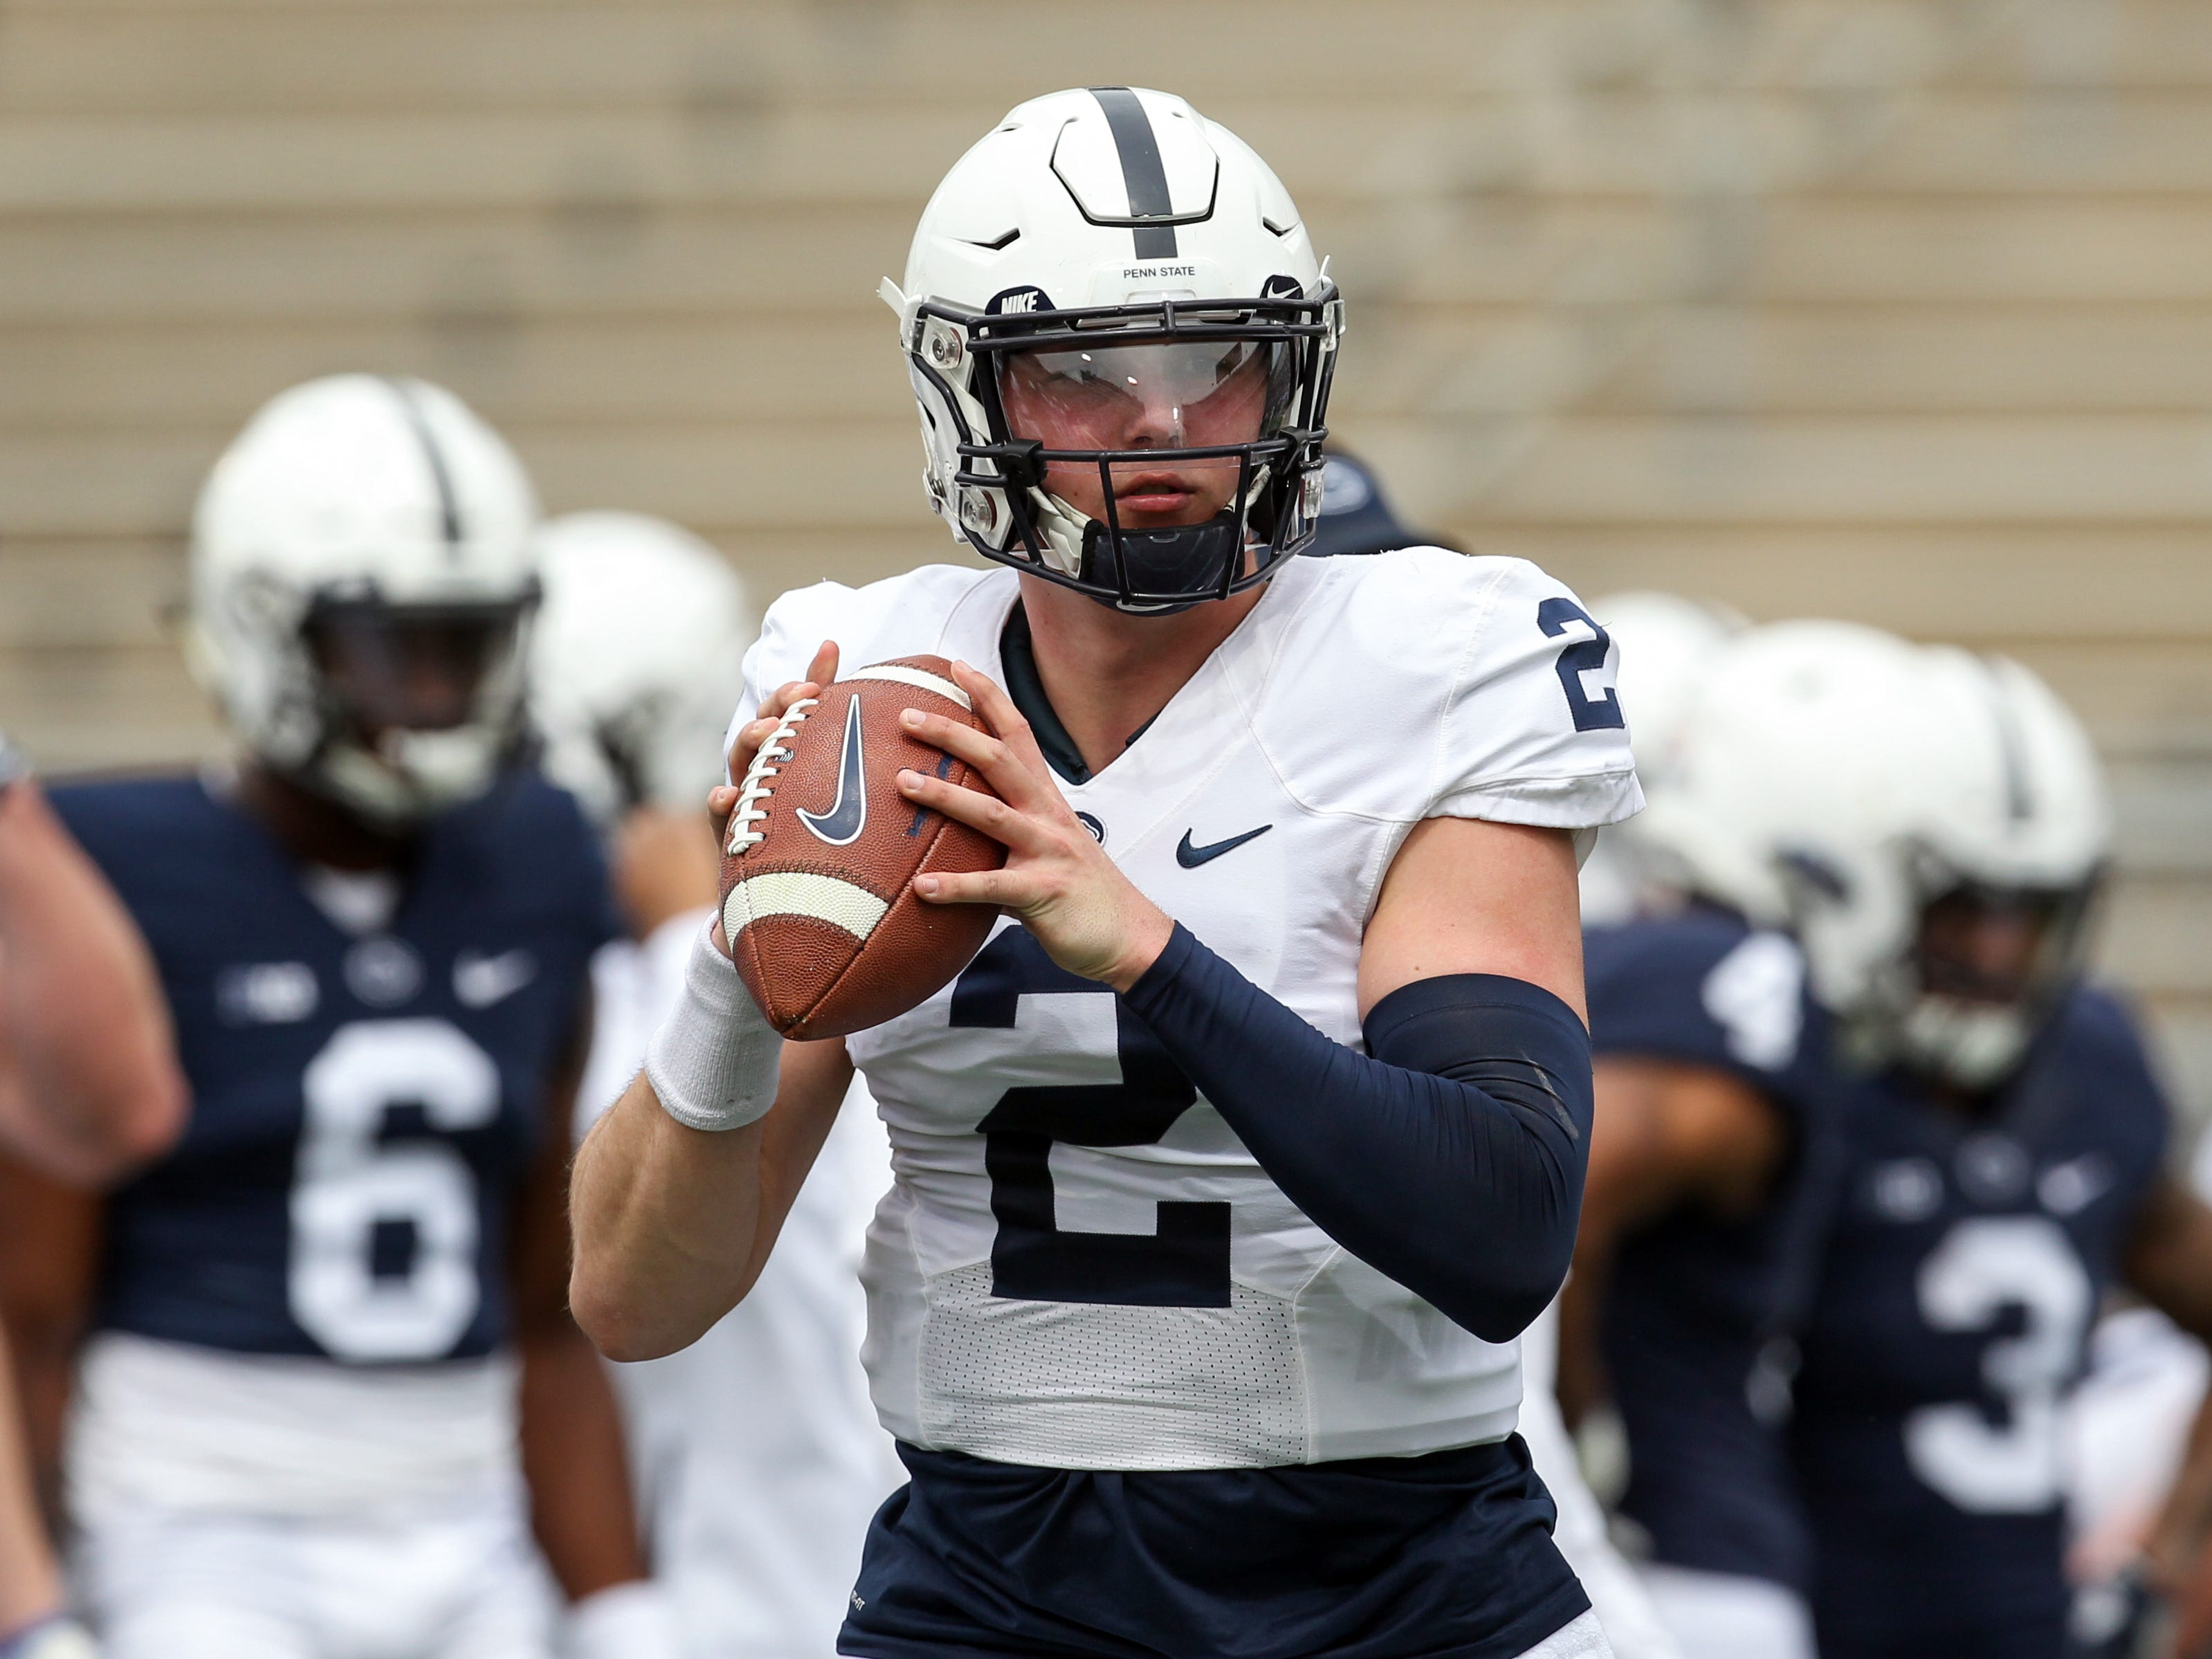 Penn State quarterback Tommy Stevens  looks to throw a pass during a warmup prior to the team's Blue White spring game.